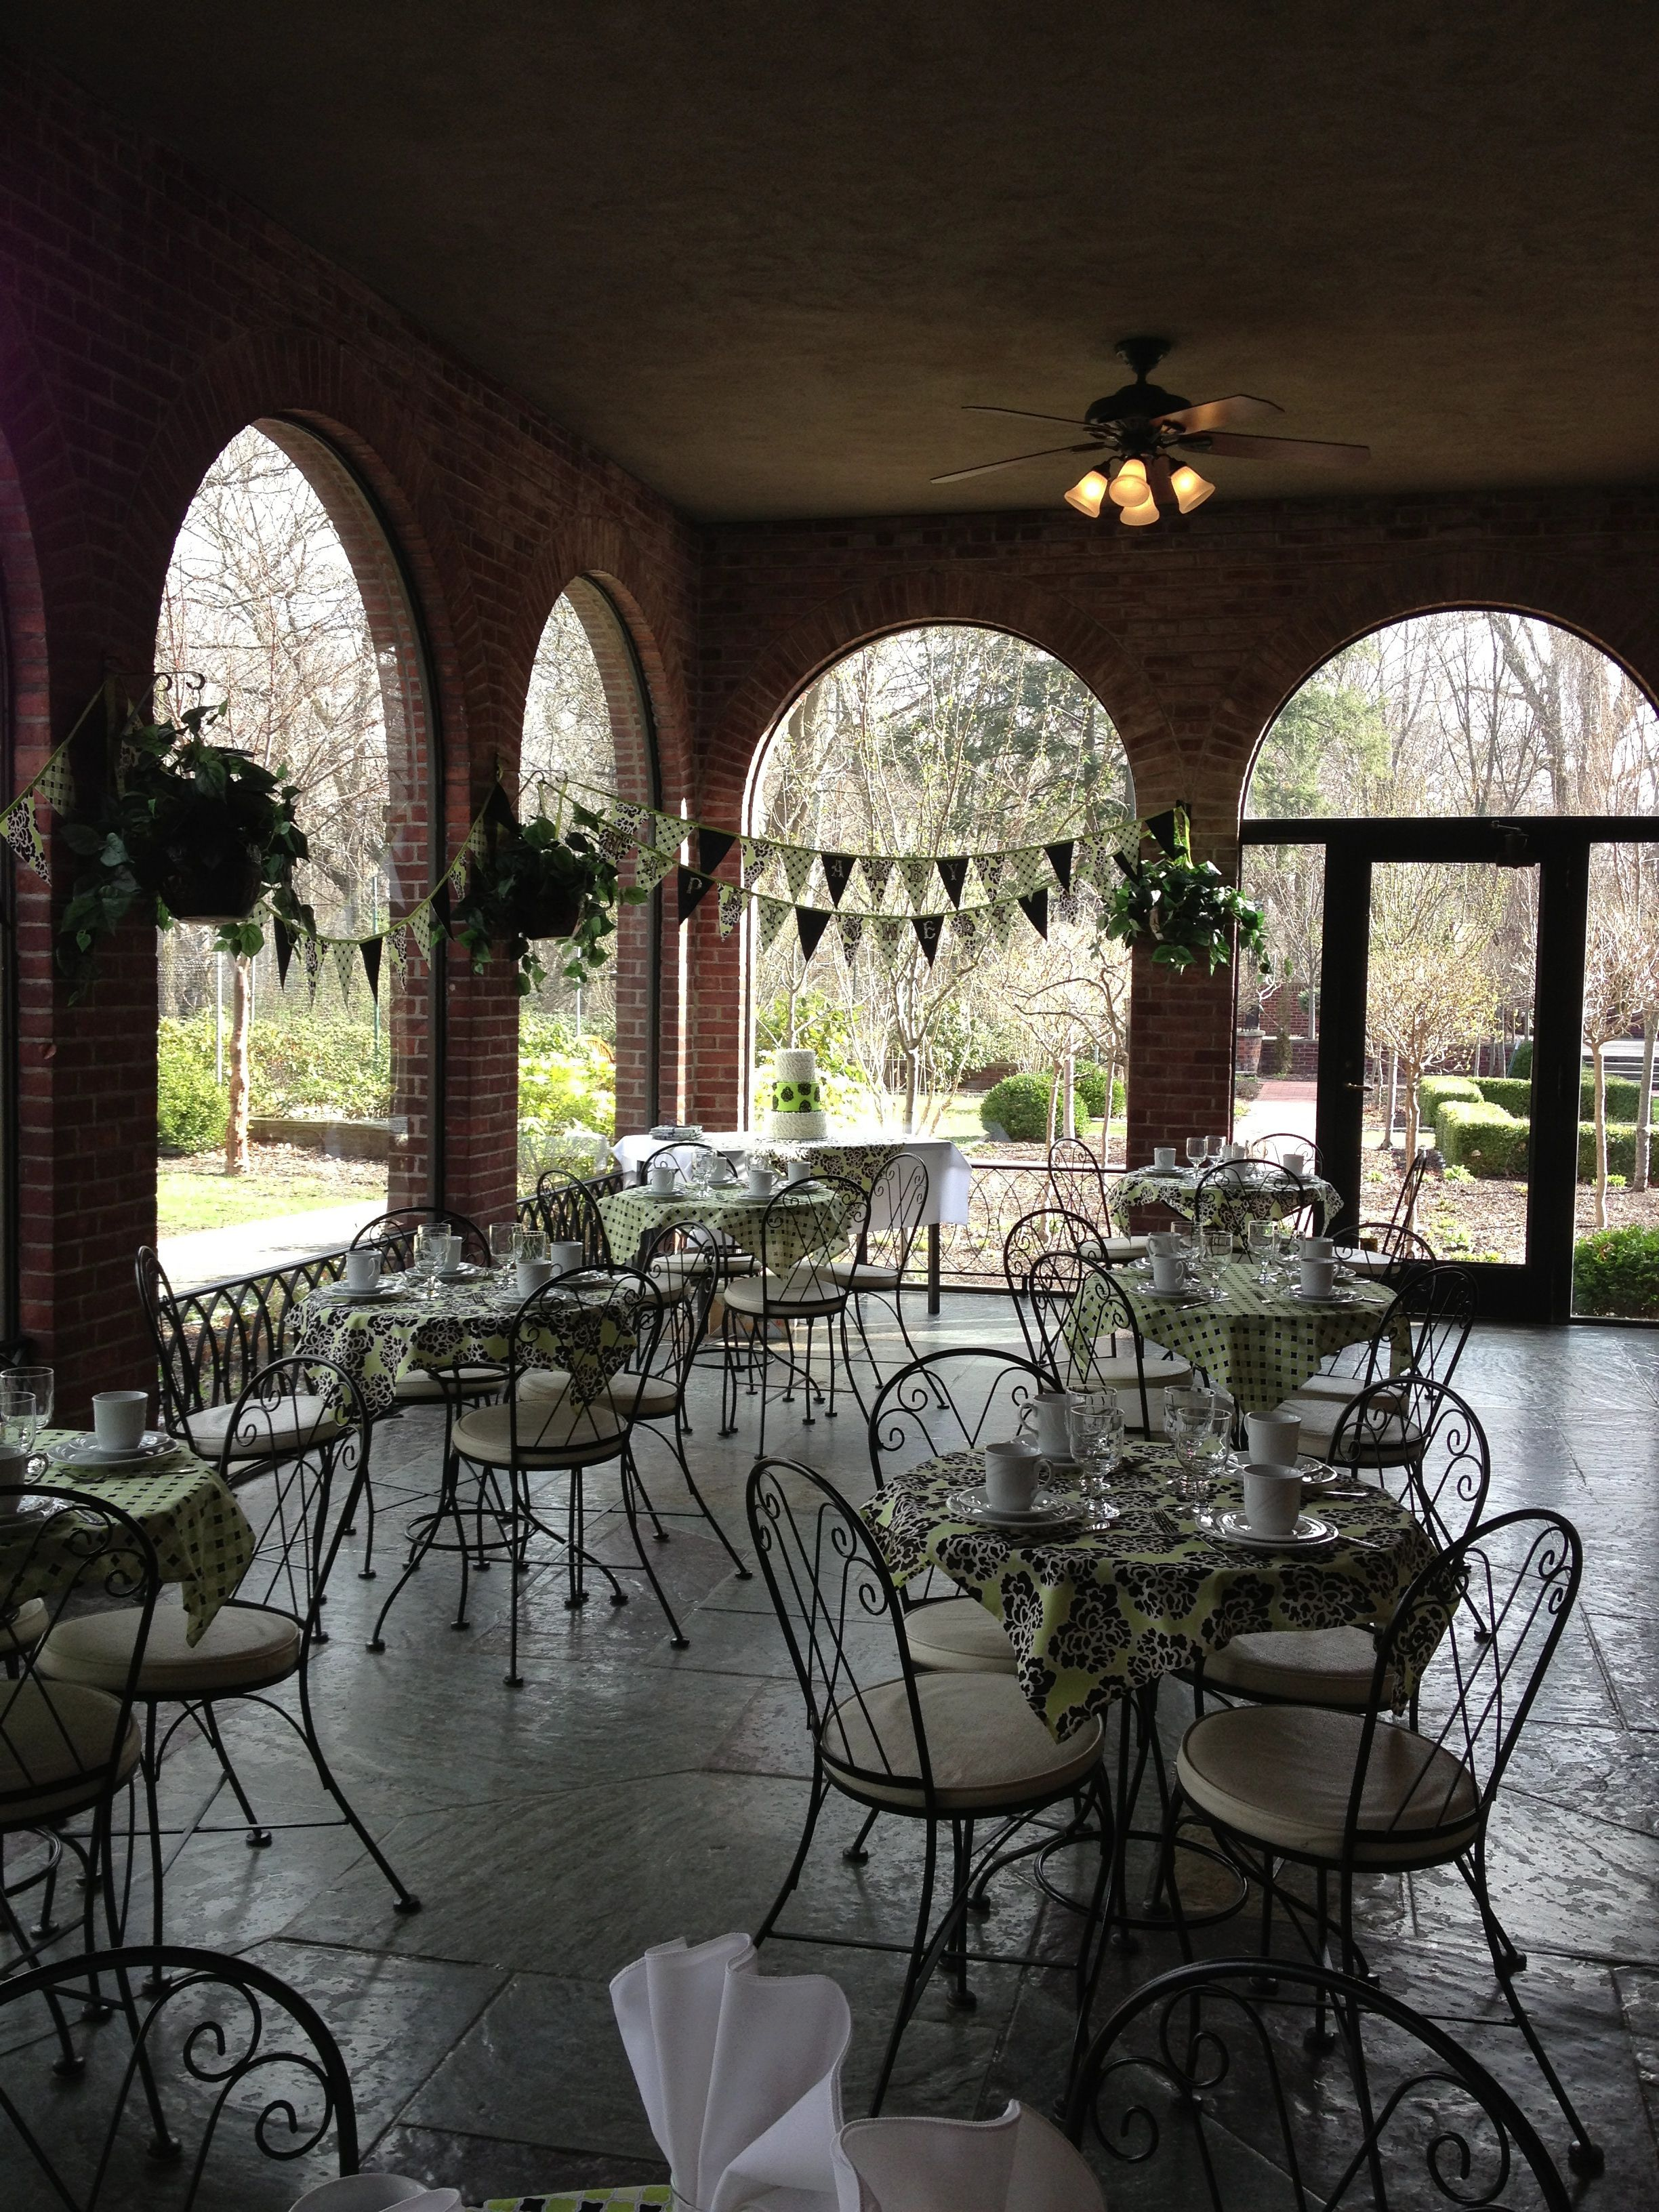 My sweet 16th birthday party at the manor house in toledo